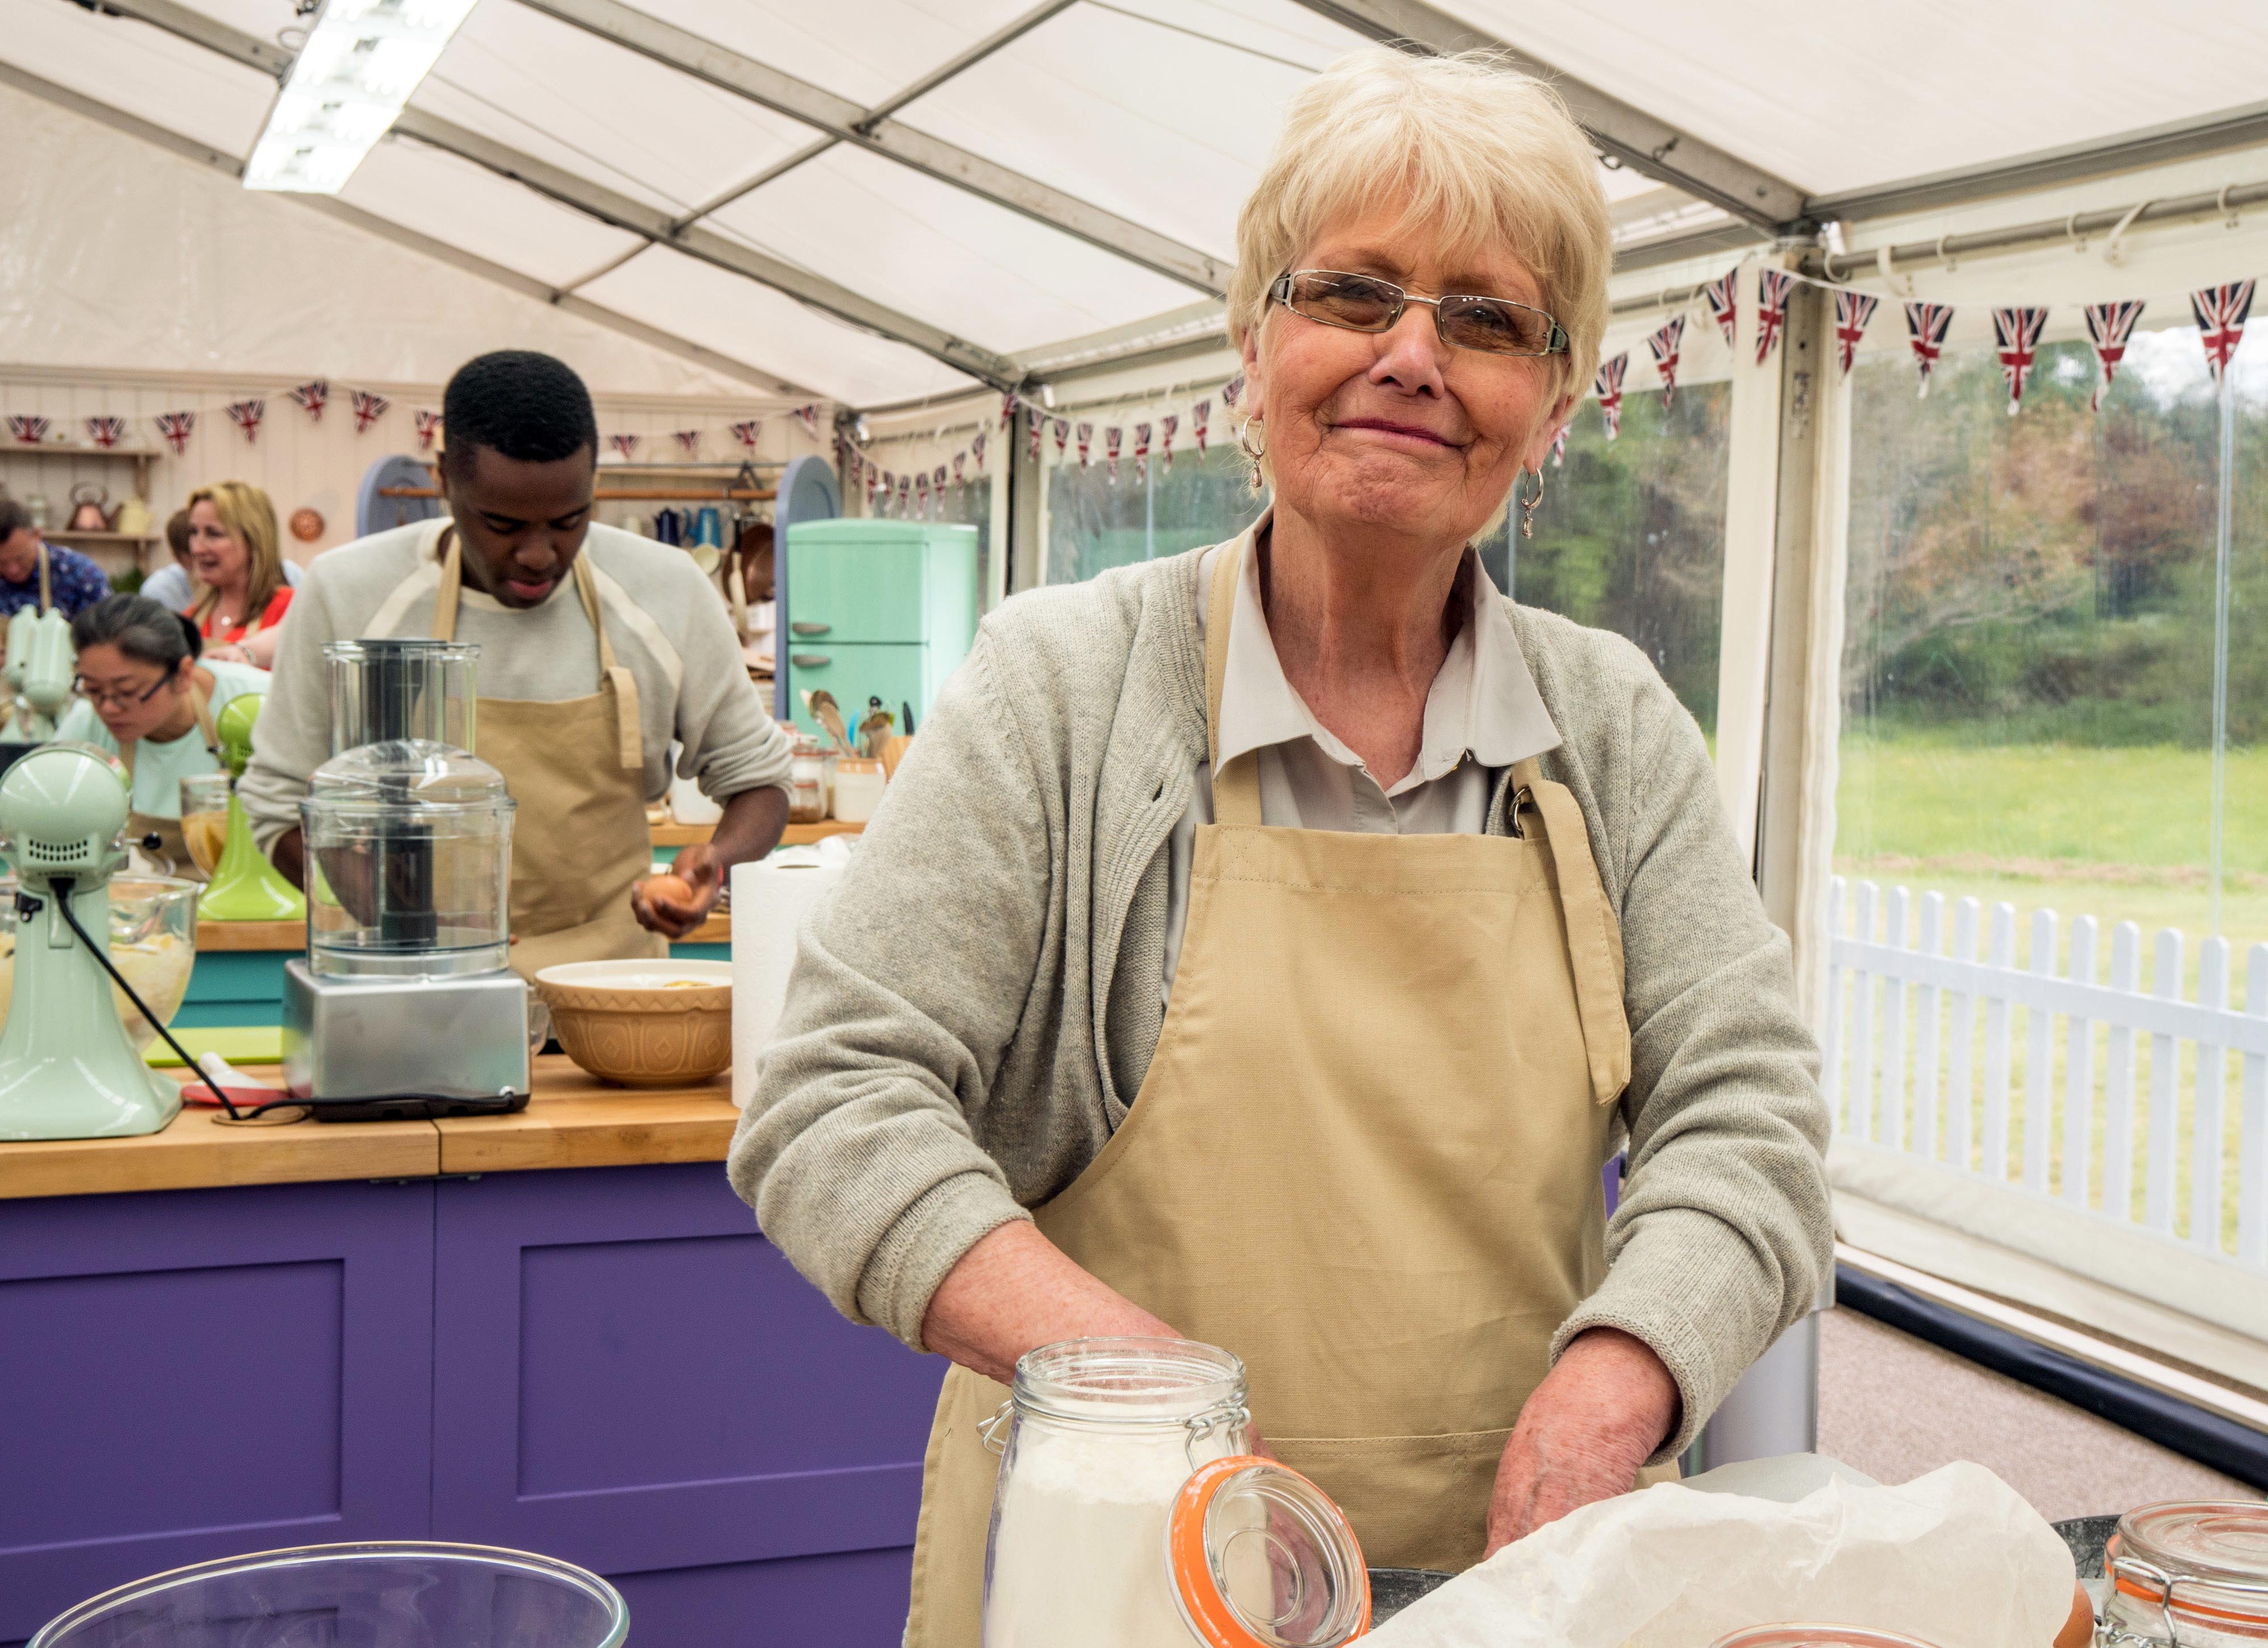 Flo on Bake Off